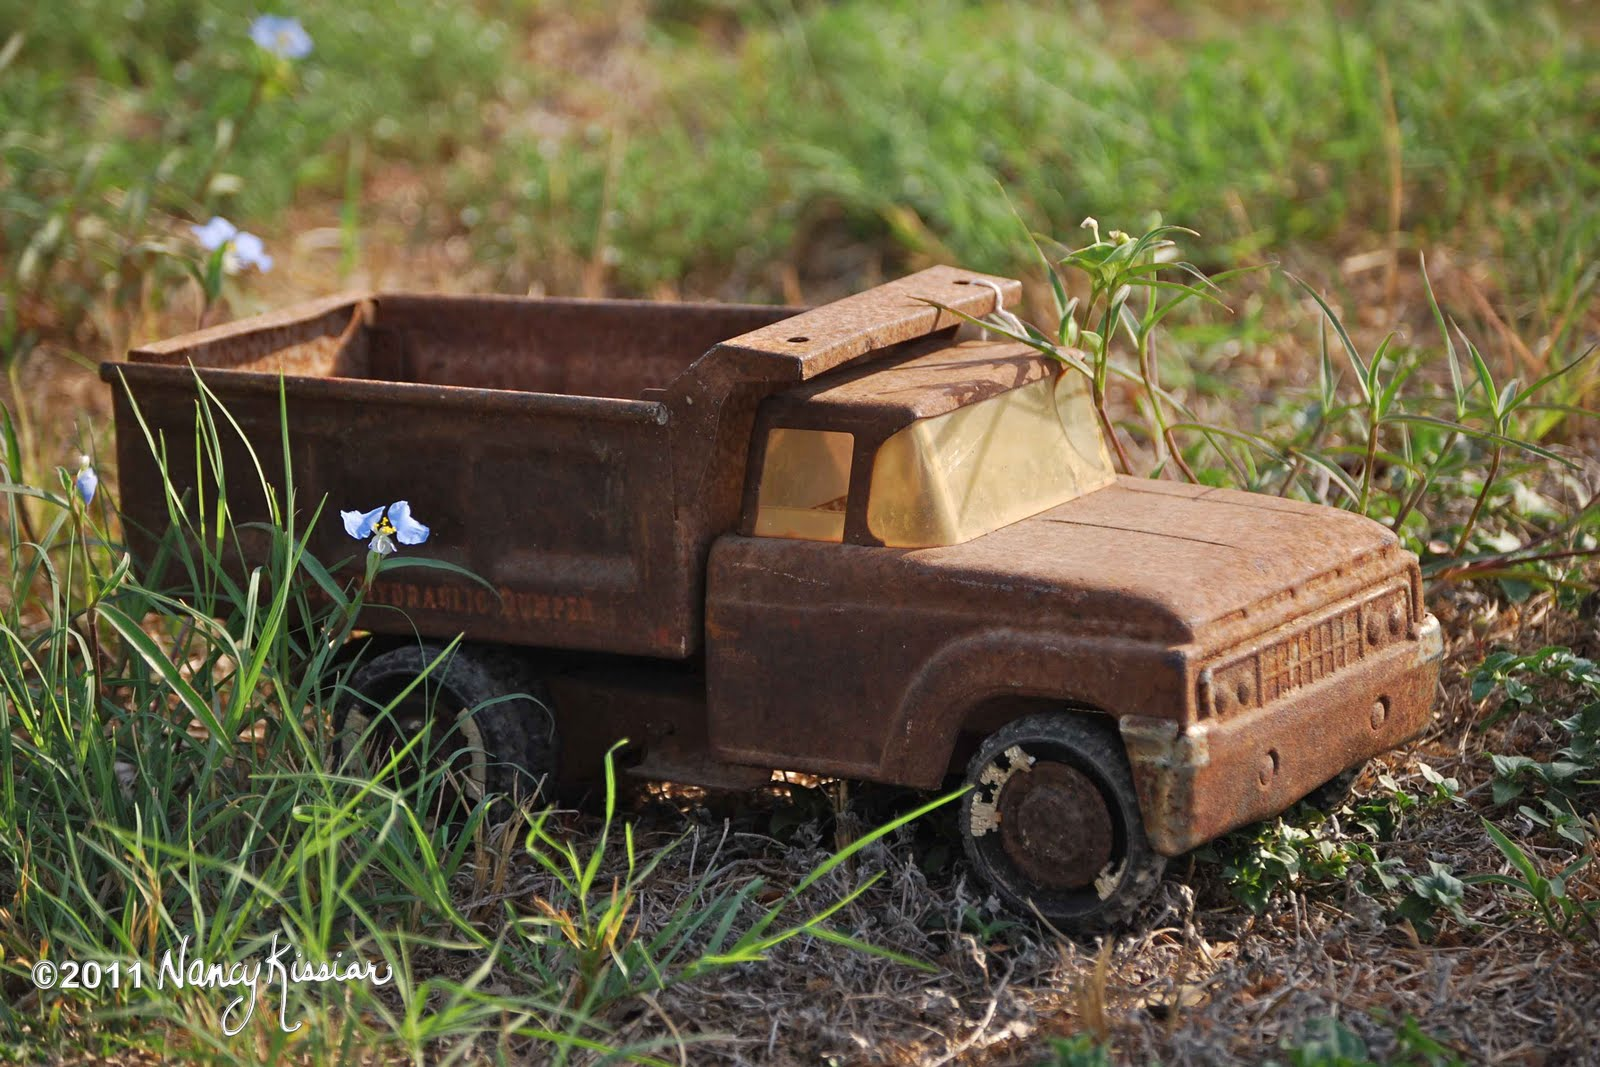 Wild About Texas: Rusty Old Toys Dump Truck and Tow Truck